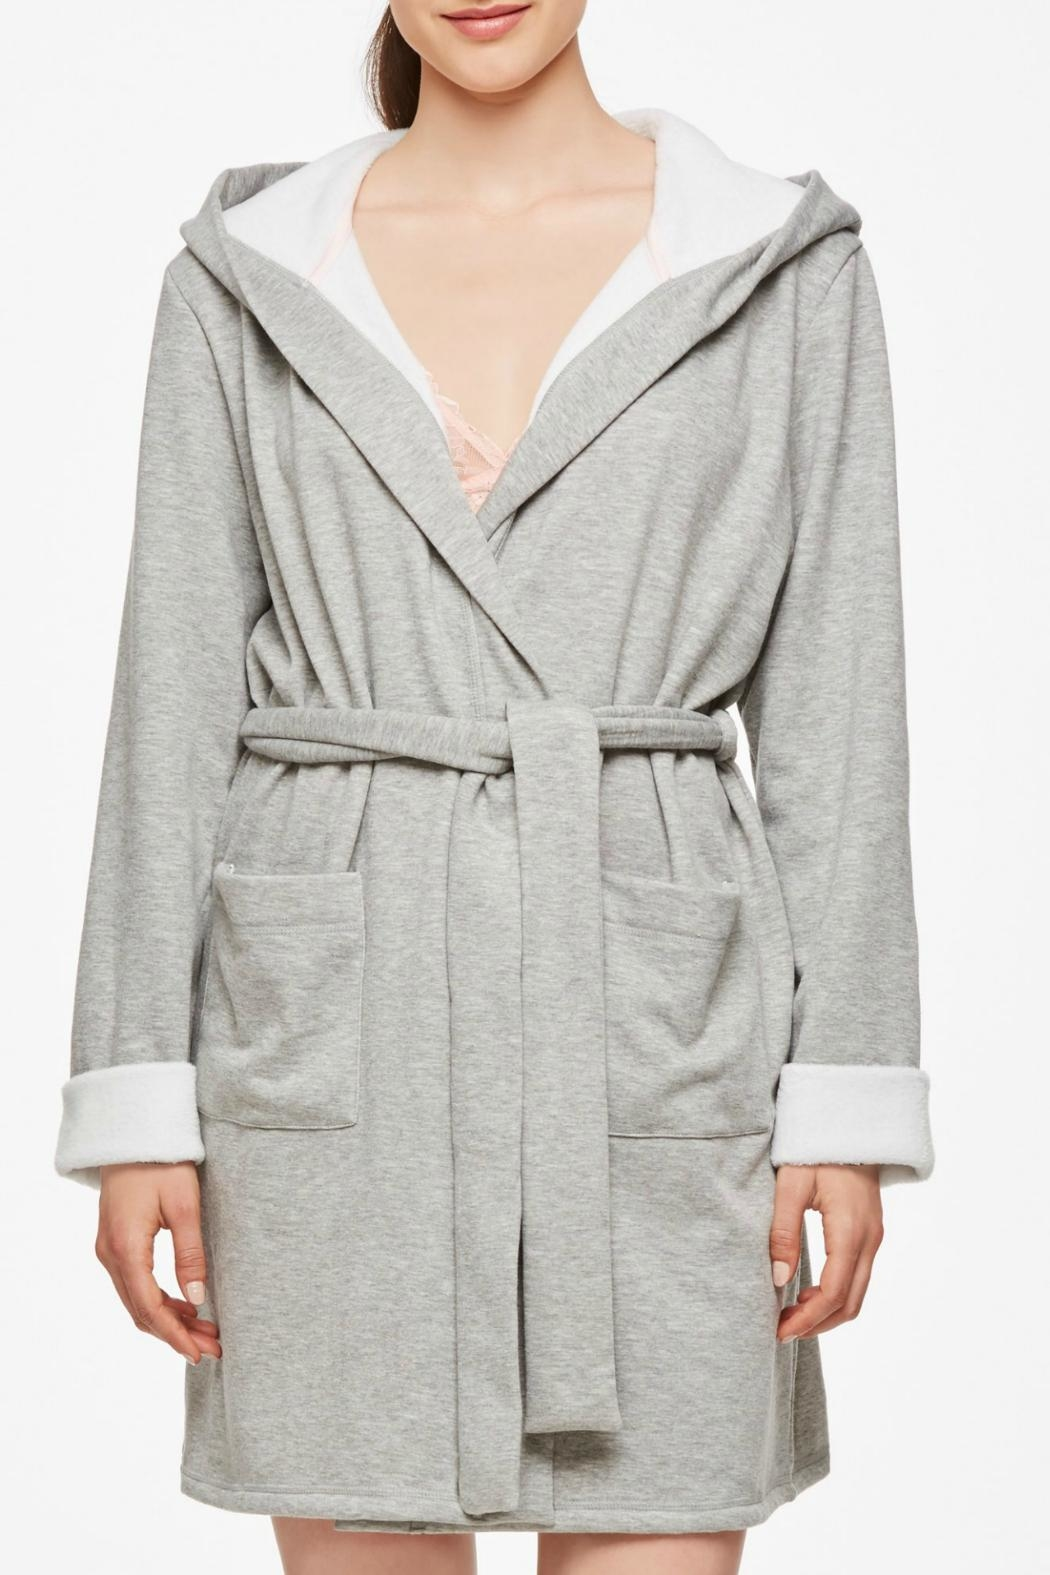 Fleur't With Me Comfy Winter Robe - Main Image